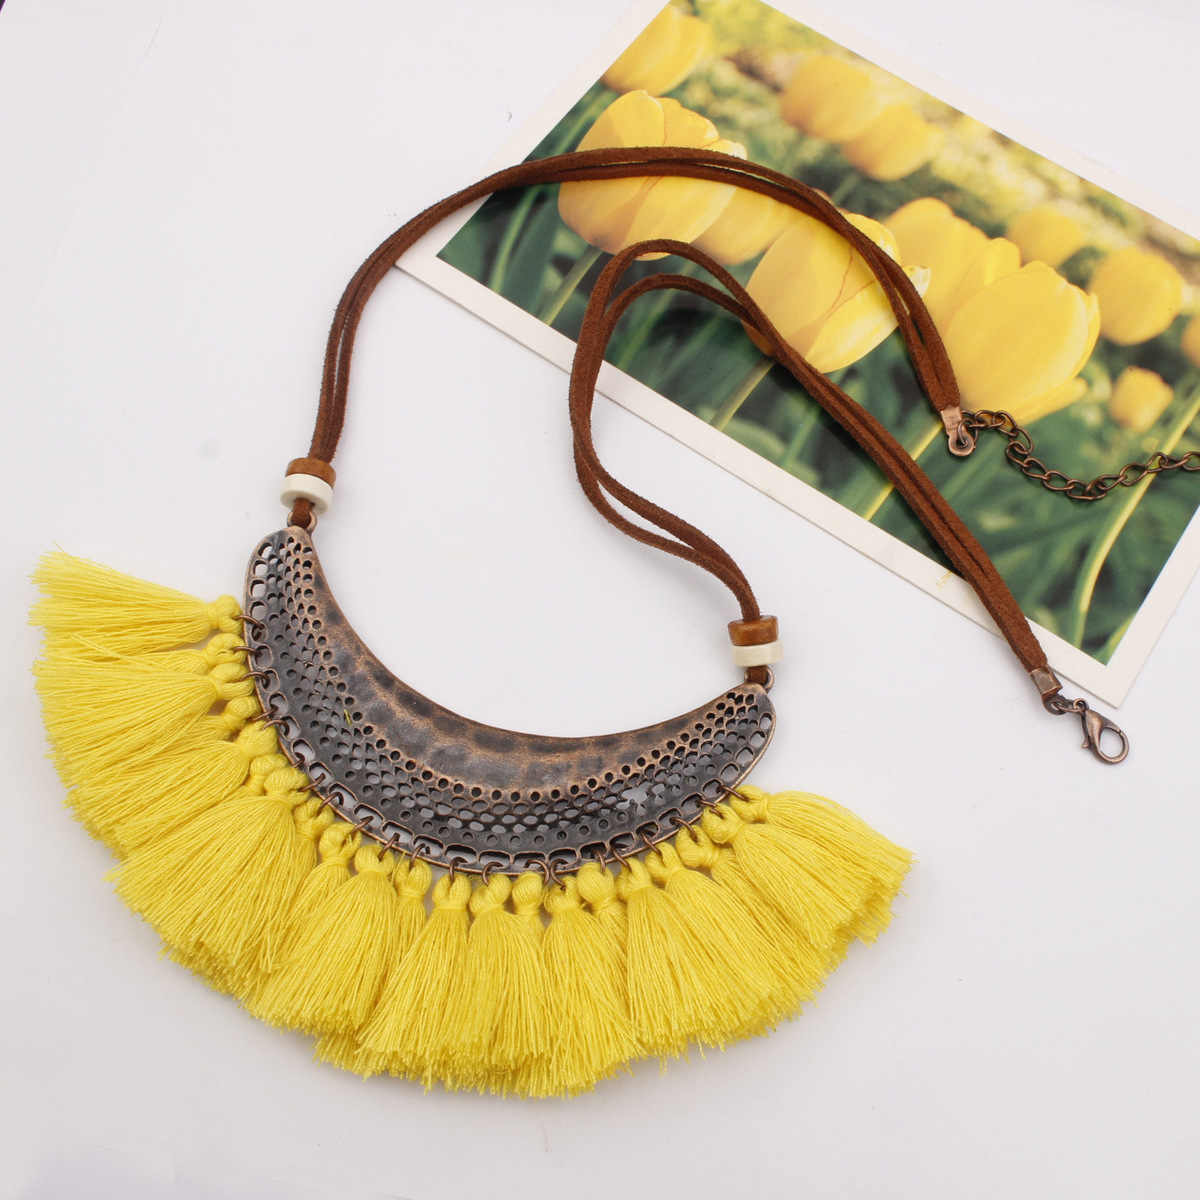 Tassels Fashion Ornaments Will Crescent Moon Accessories Posimi Second Tassels Accessories Christmas Party Gift